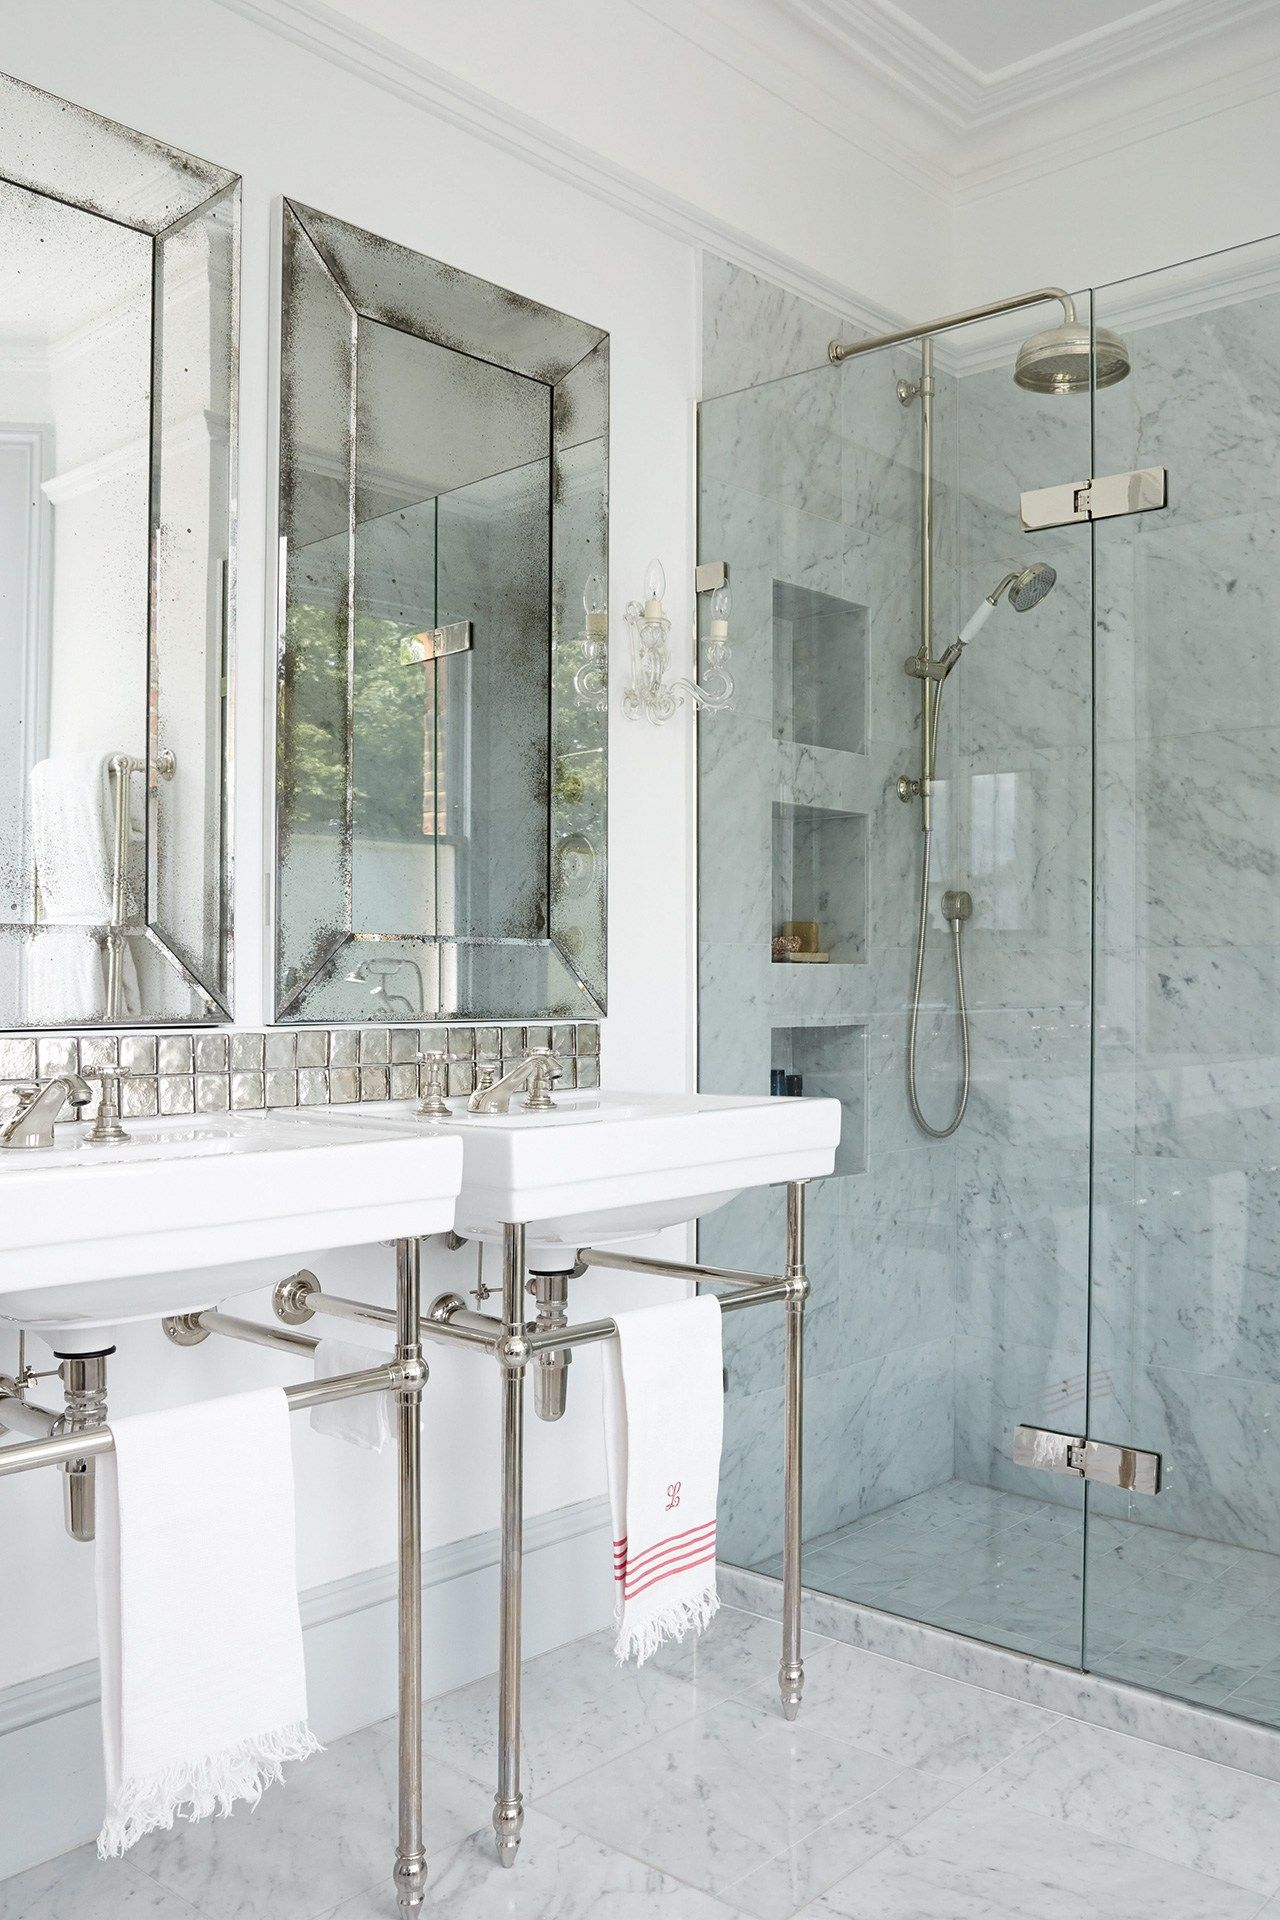 Small bathroom ideas | Take a Soak | Pinterest | Carrara marble ...